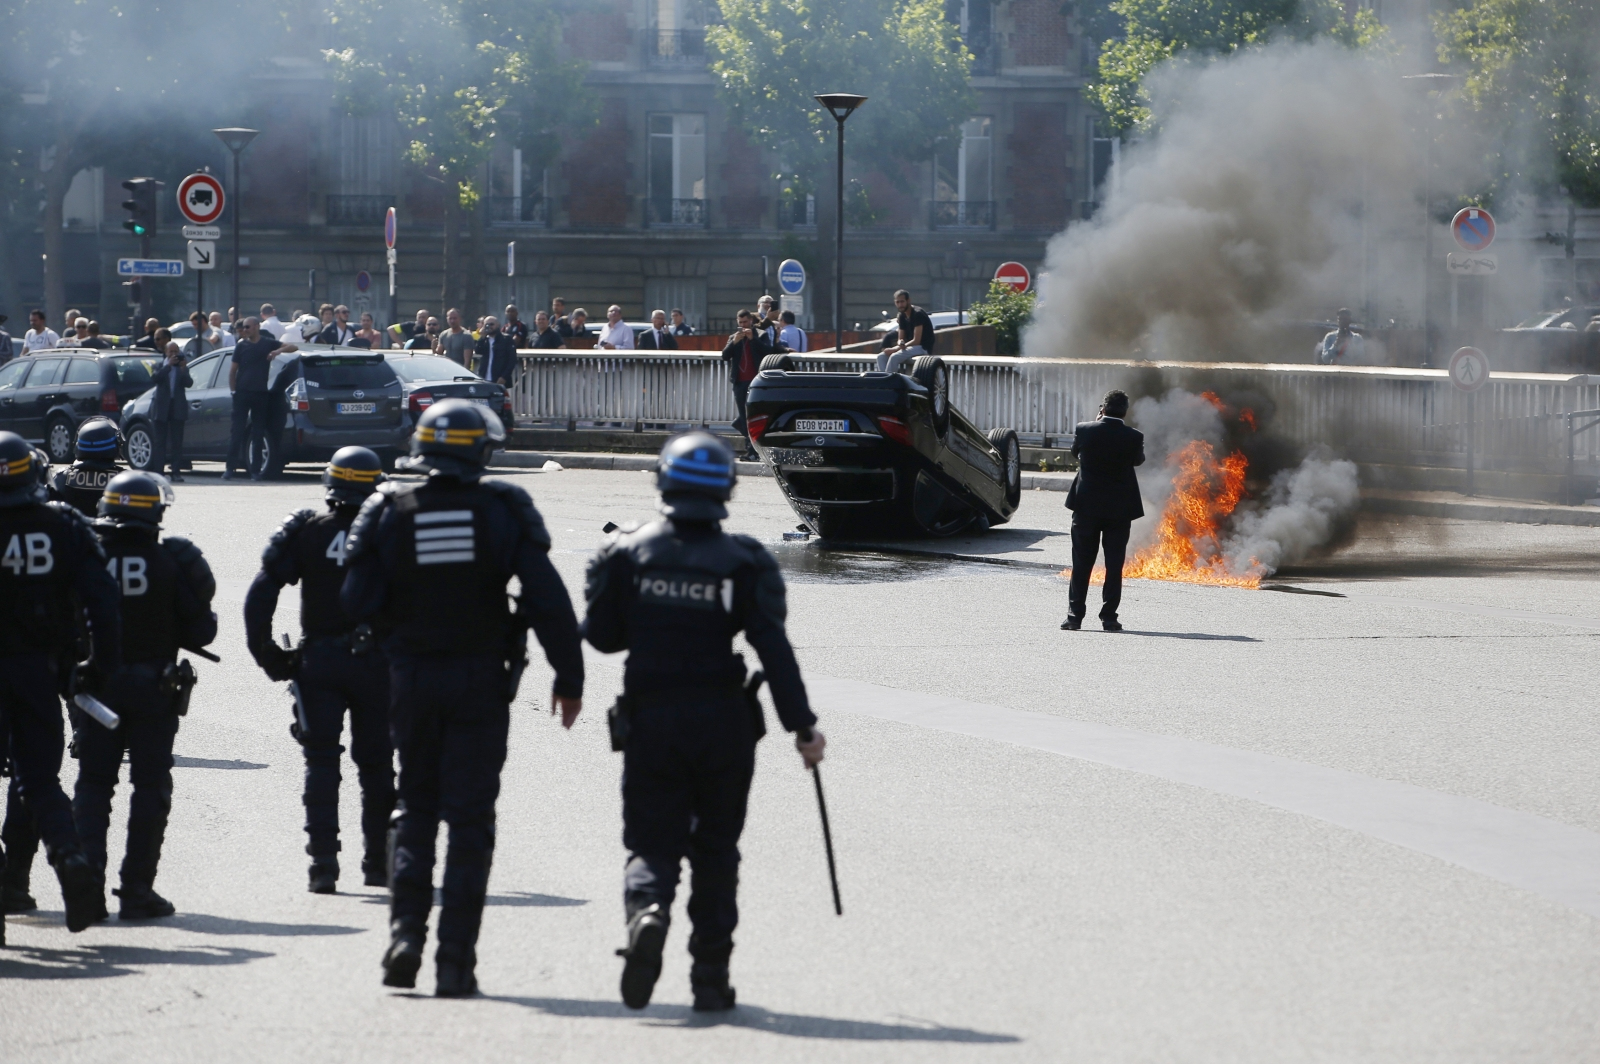 french uberpop protests uber suspends service 39 in gesture of peace 39 following street violence. Black Bedroom Furniture Sets. Home Design Ideas